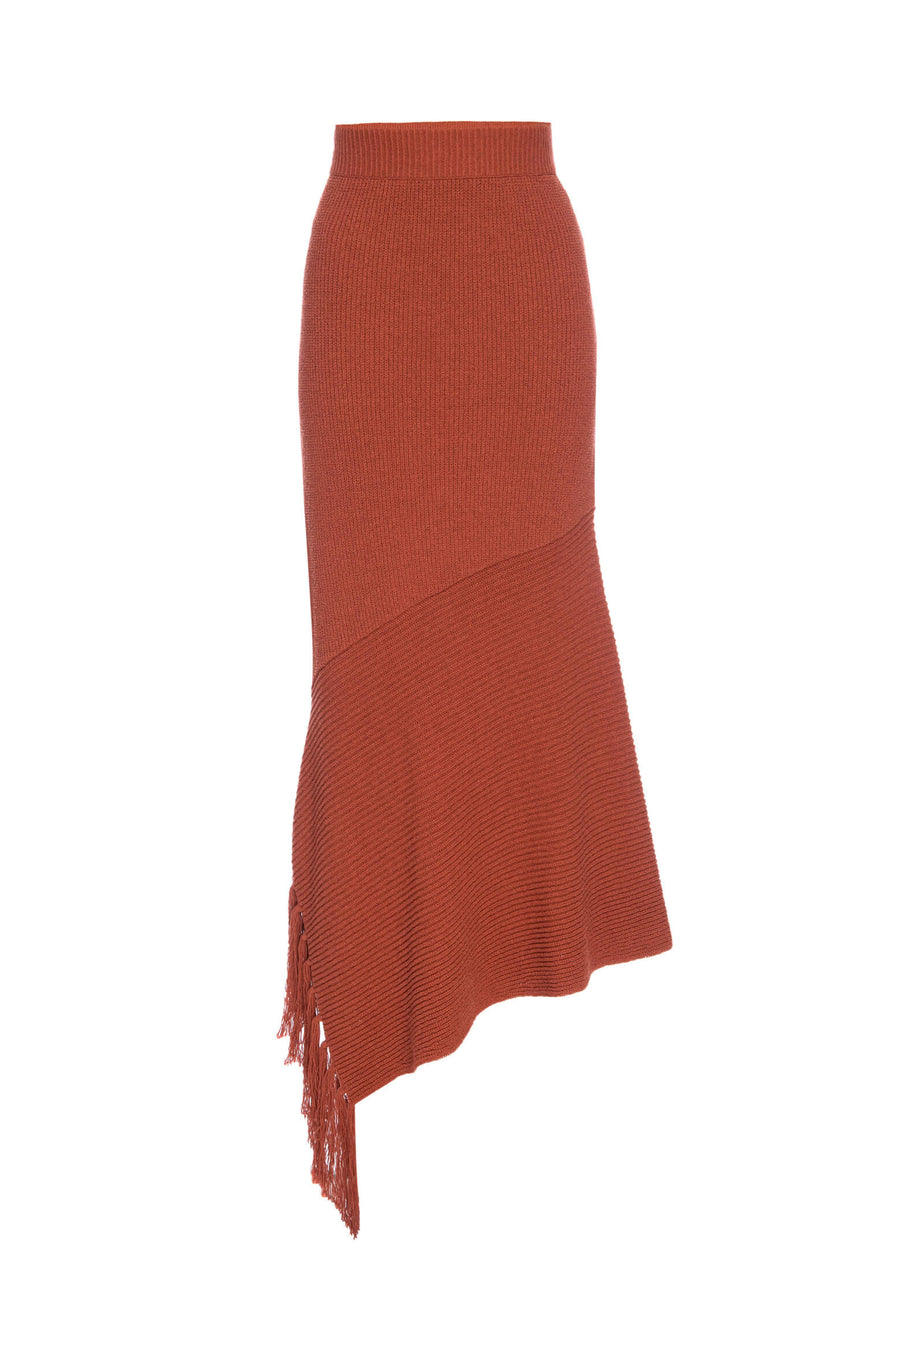 ALC Costello Skirt in Deep Amber from The New Trend